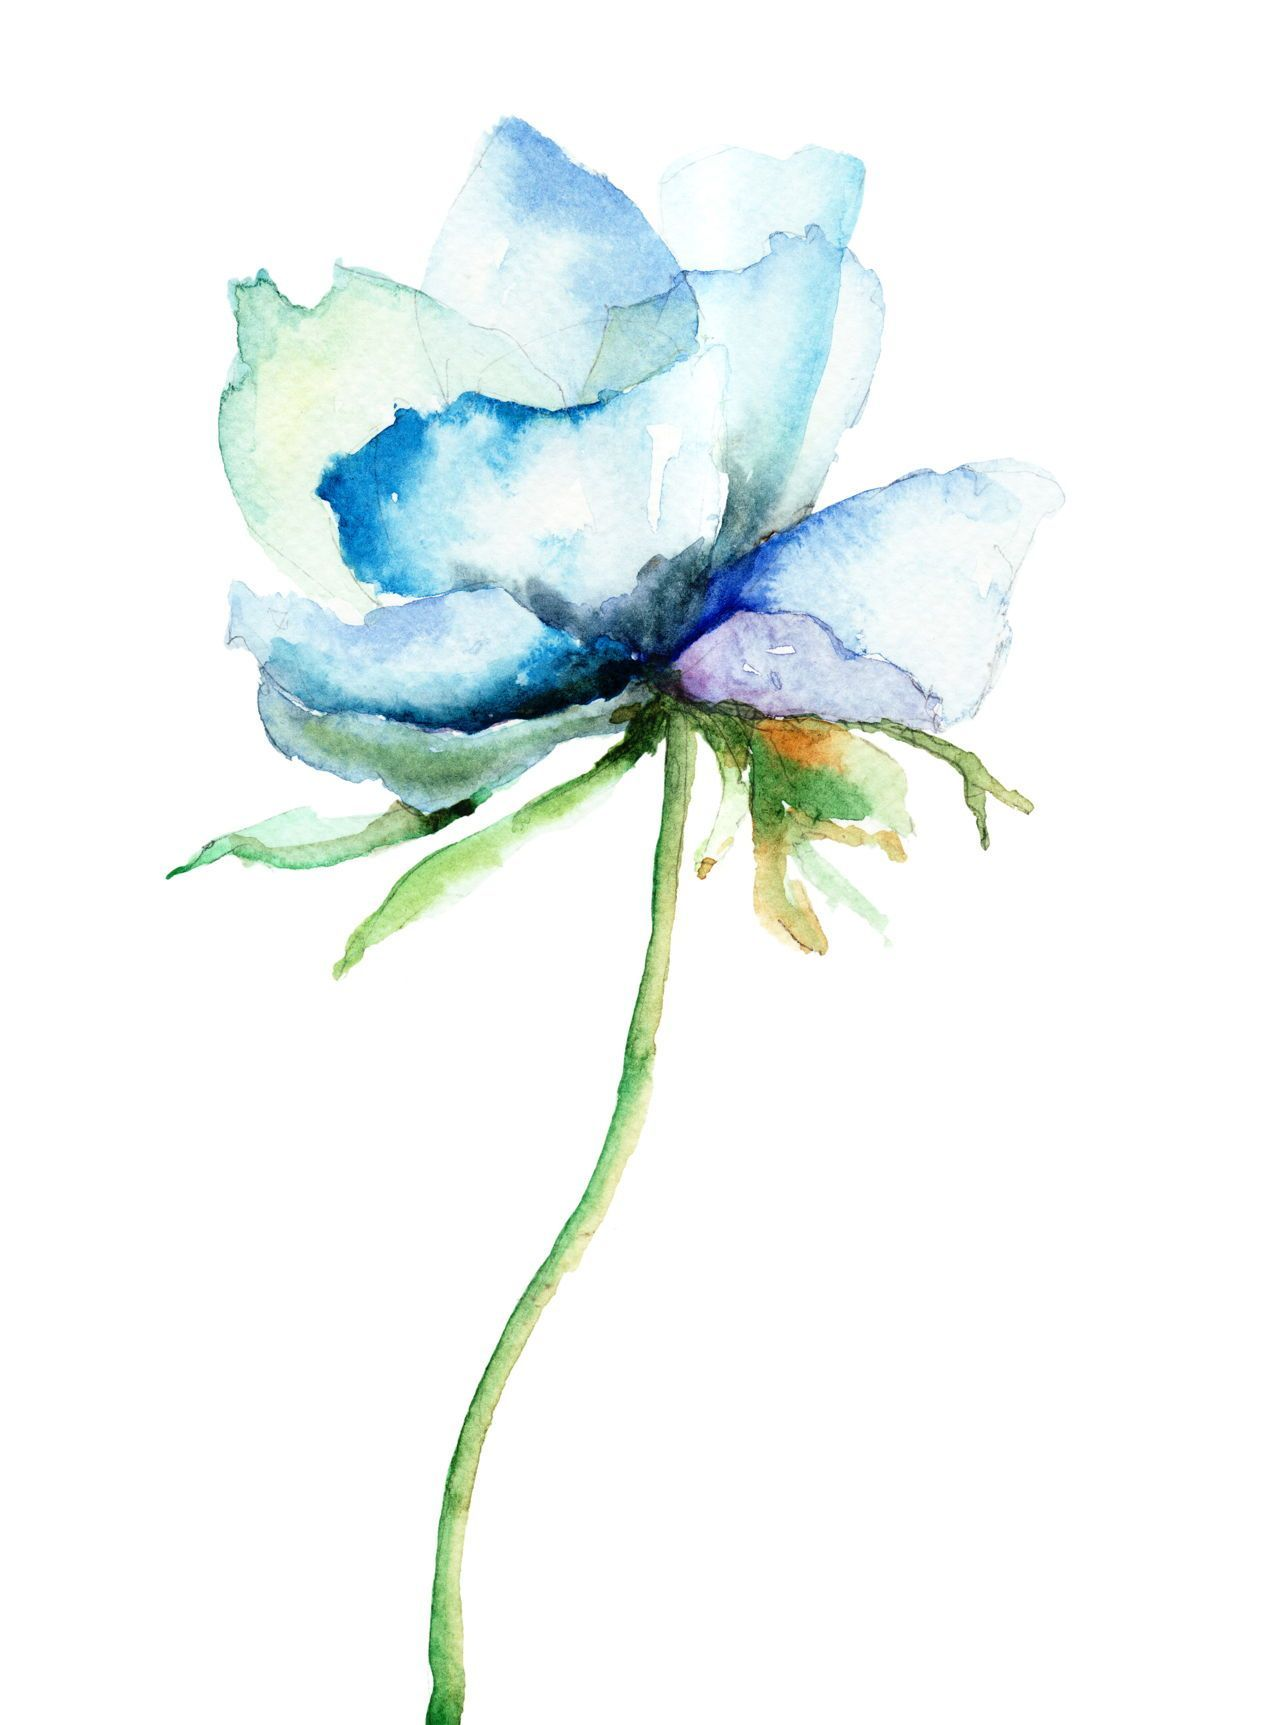 Watercolor Arts With Images Watercolor Flowers Paintings Blue